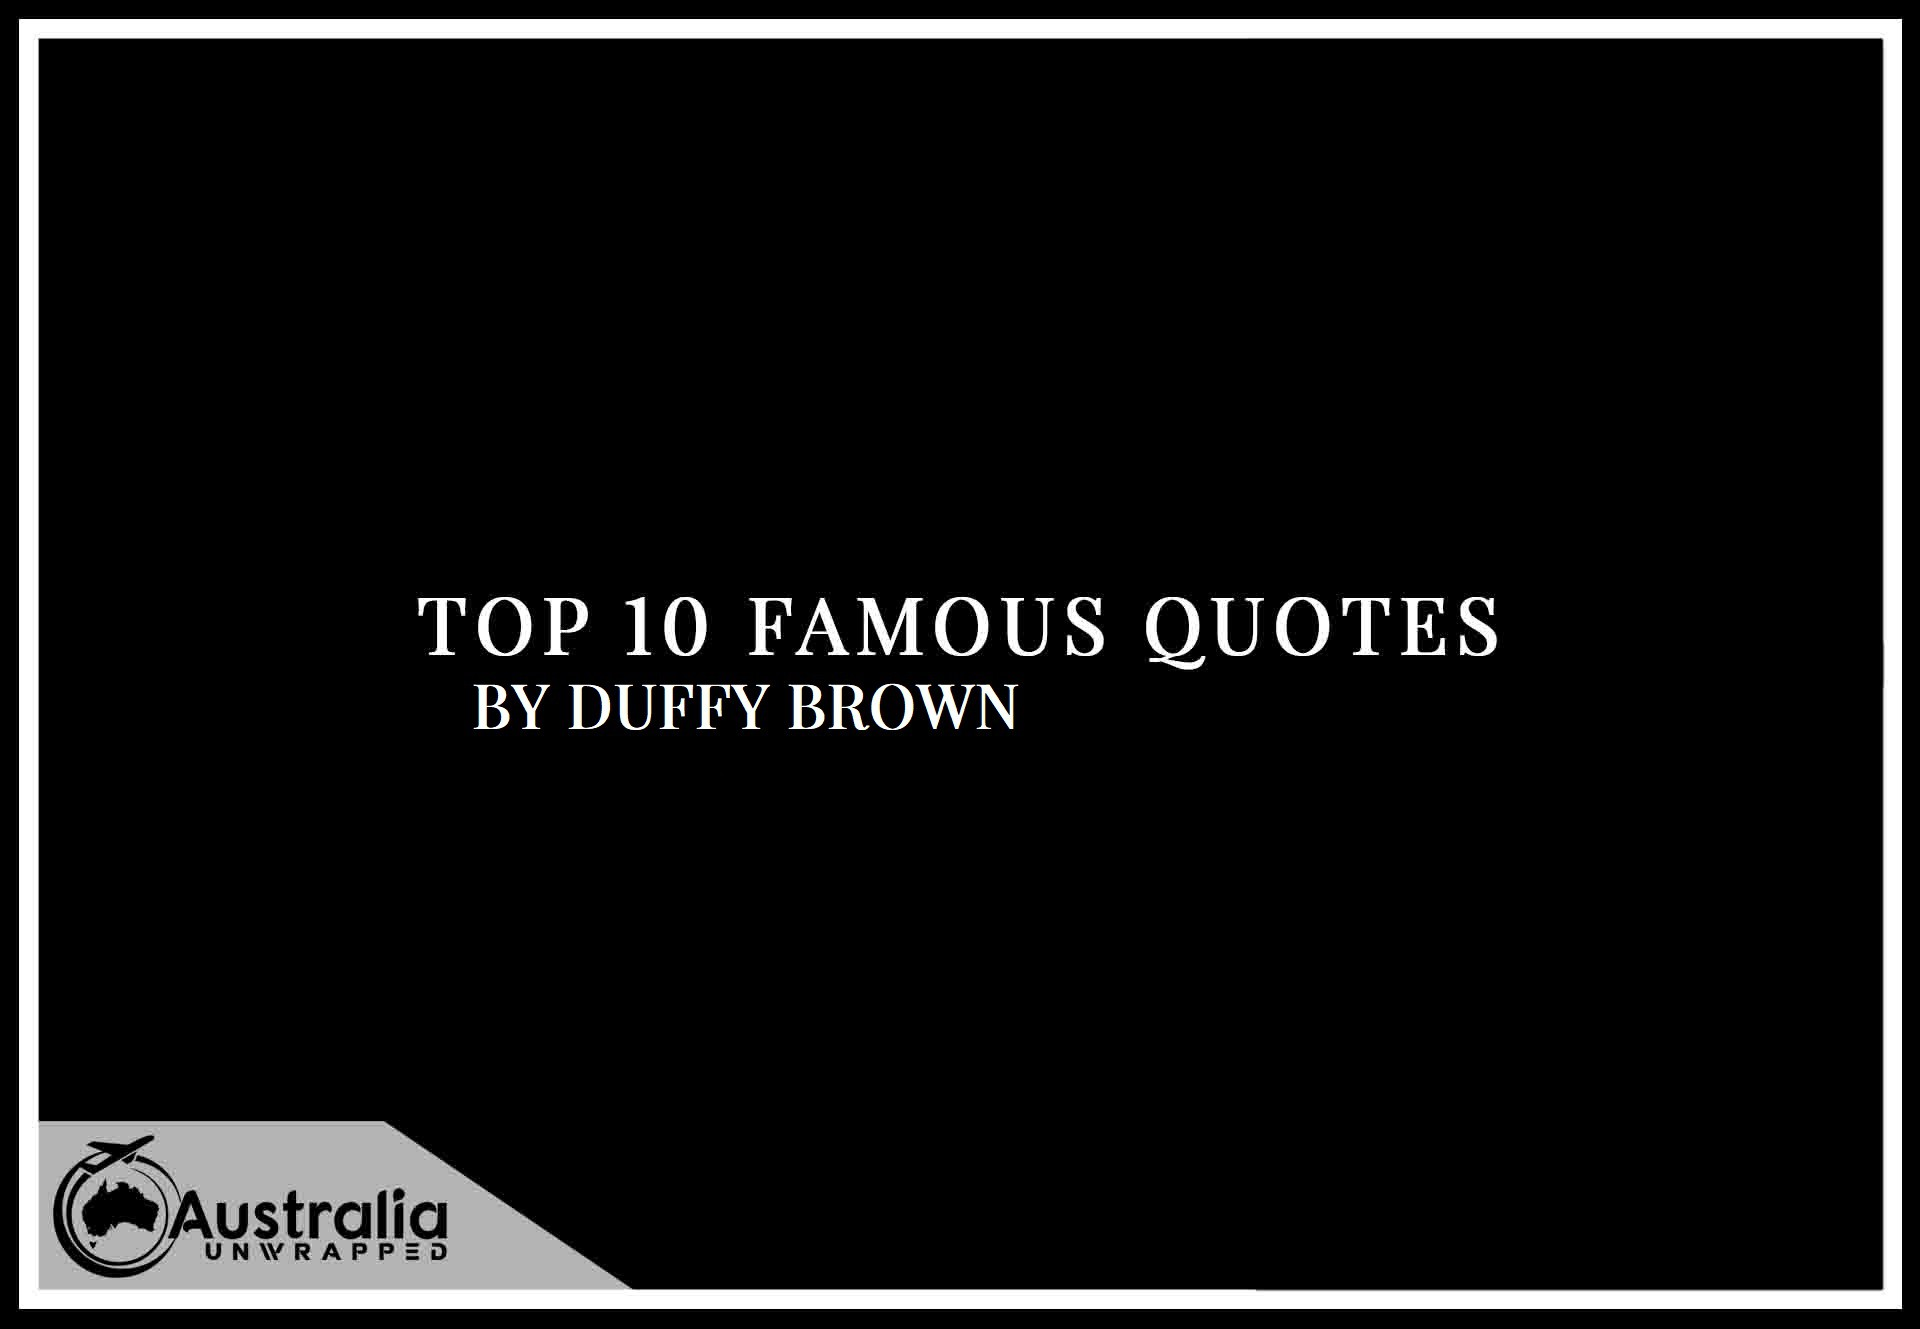 Top 10 Famous Quotes by Author Duffy Brown